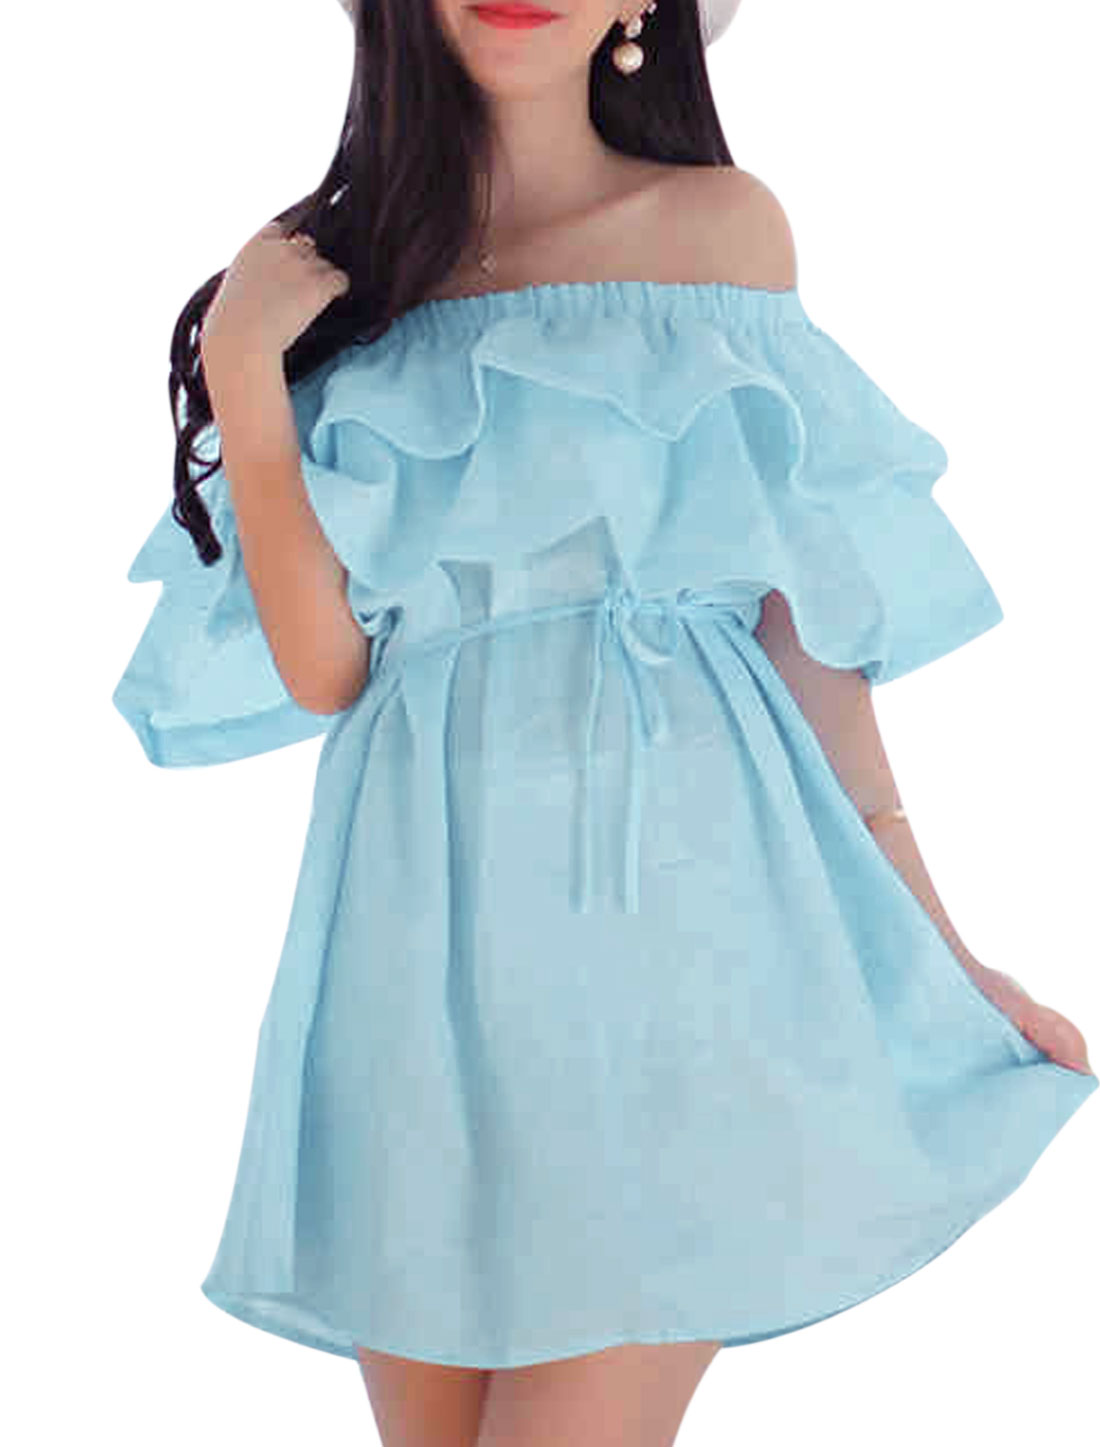 Lady's New Style Off Shoulder Ruffled Light Blue Short Dress XS